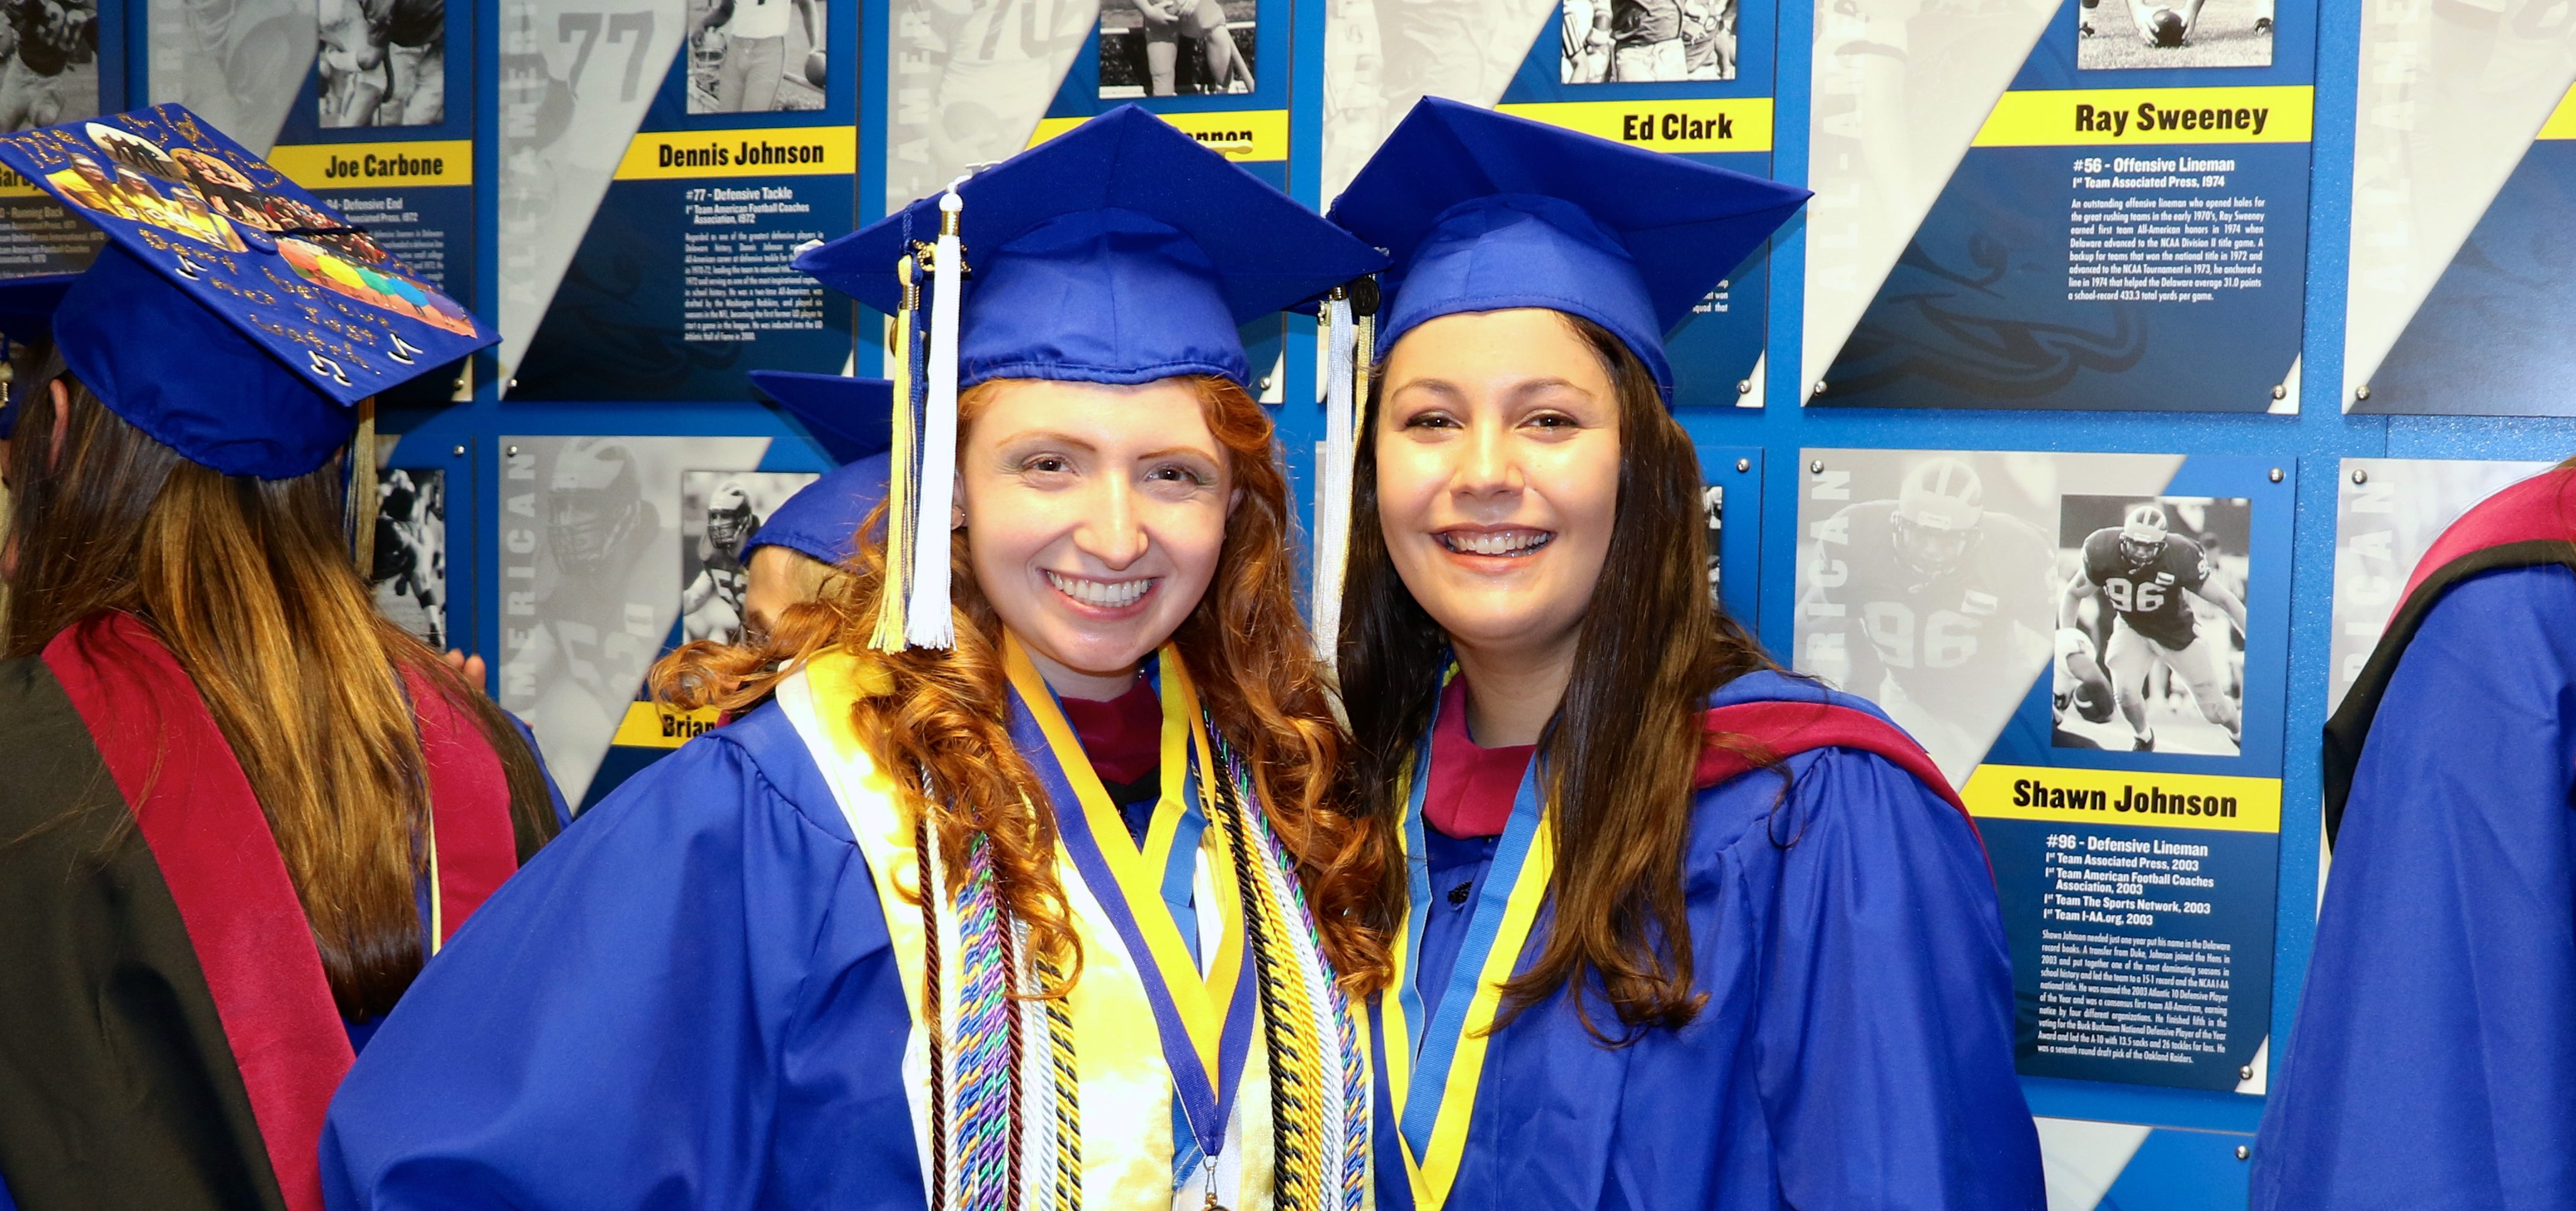 Two College of Education and Human Development students wait in line for graduation.